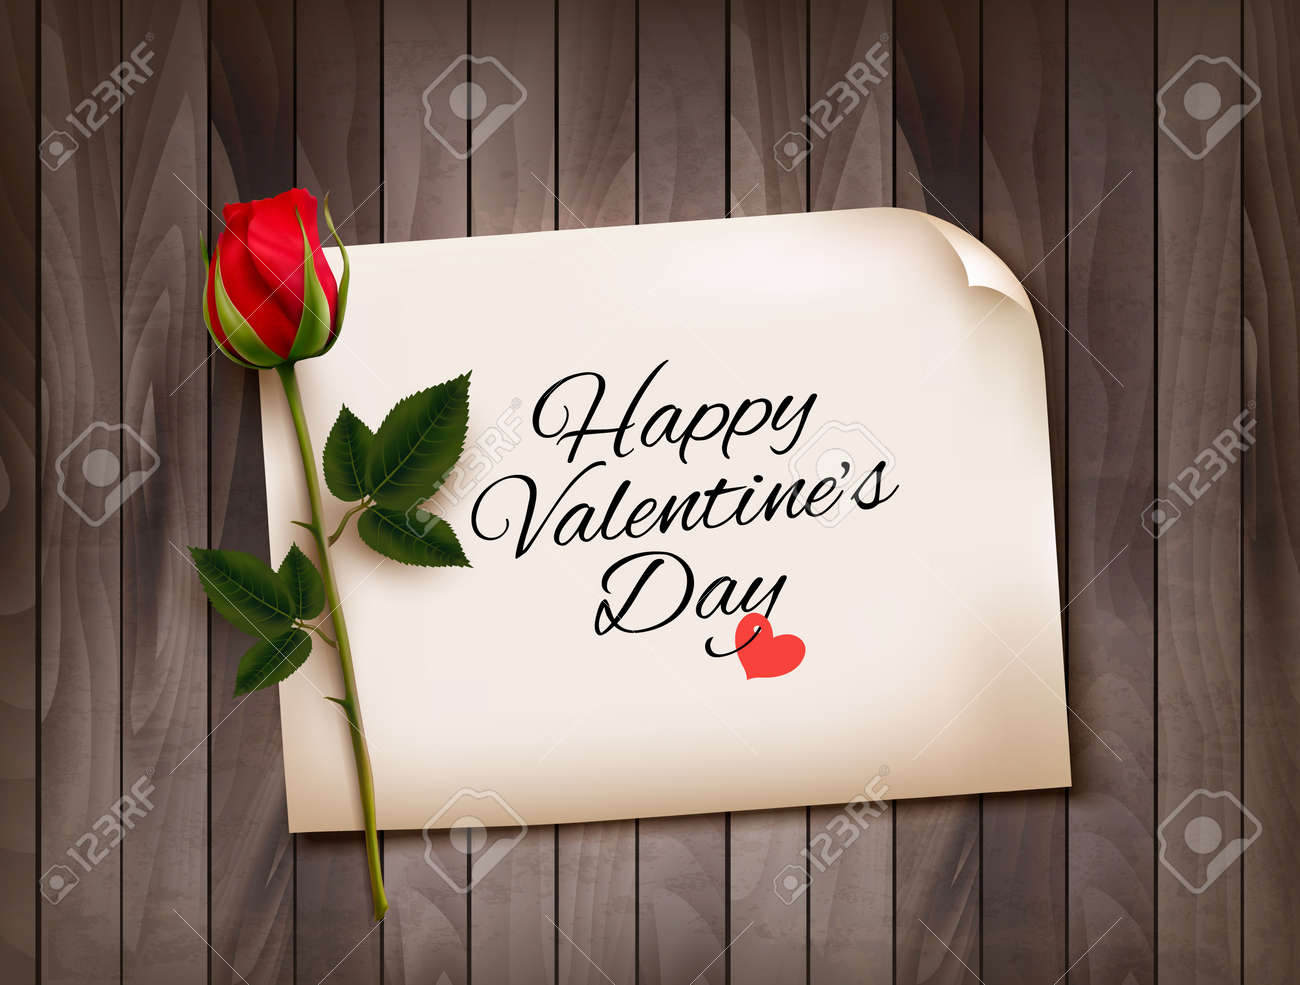 Happy Valentine's Day background with a note on a wooden wall and a red rose. Vector. - 51833318